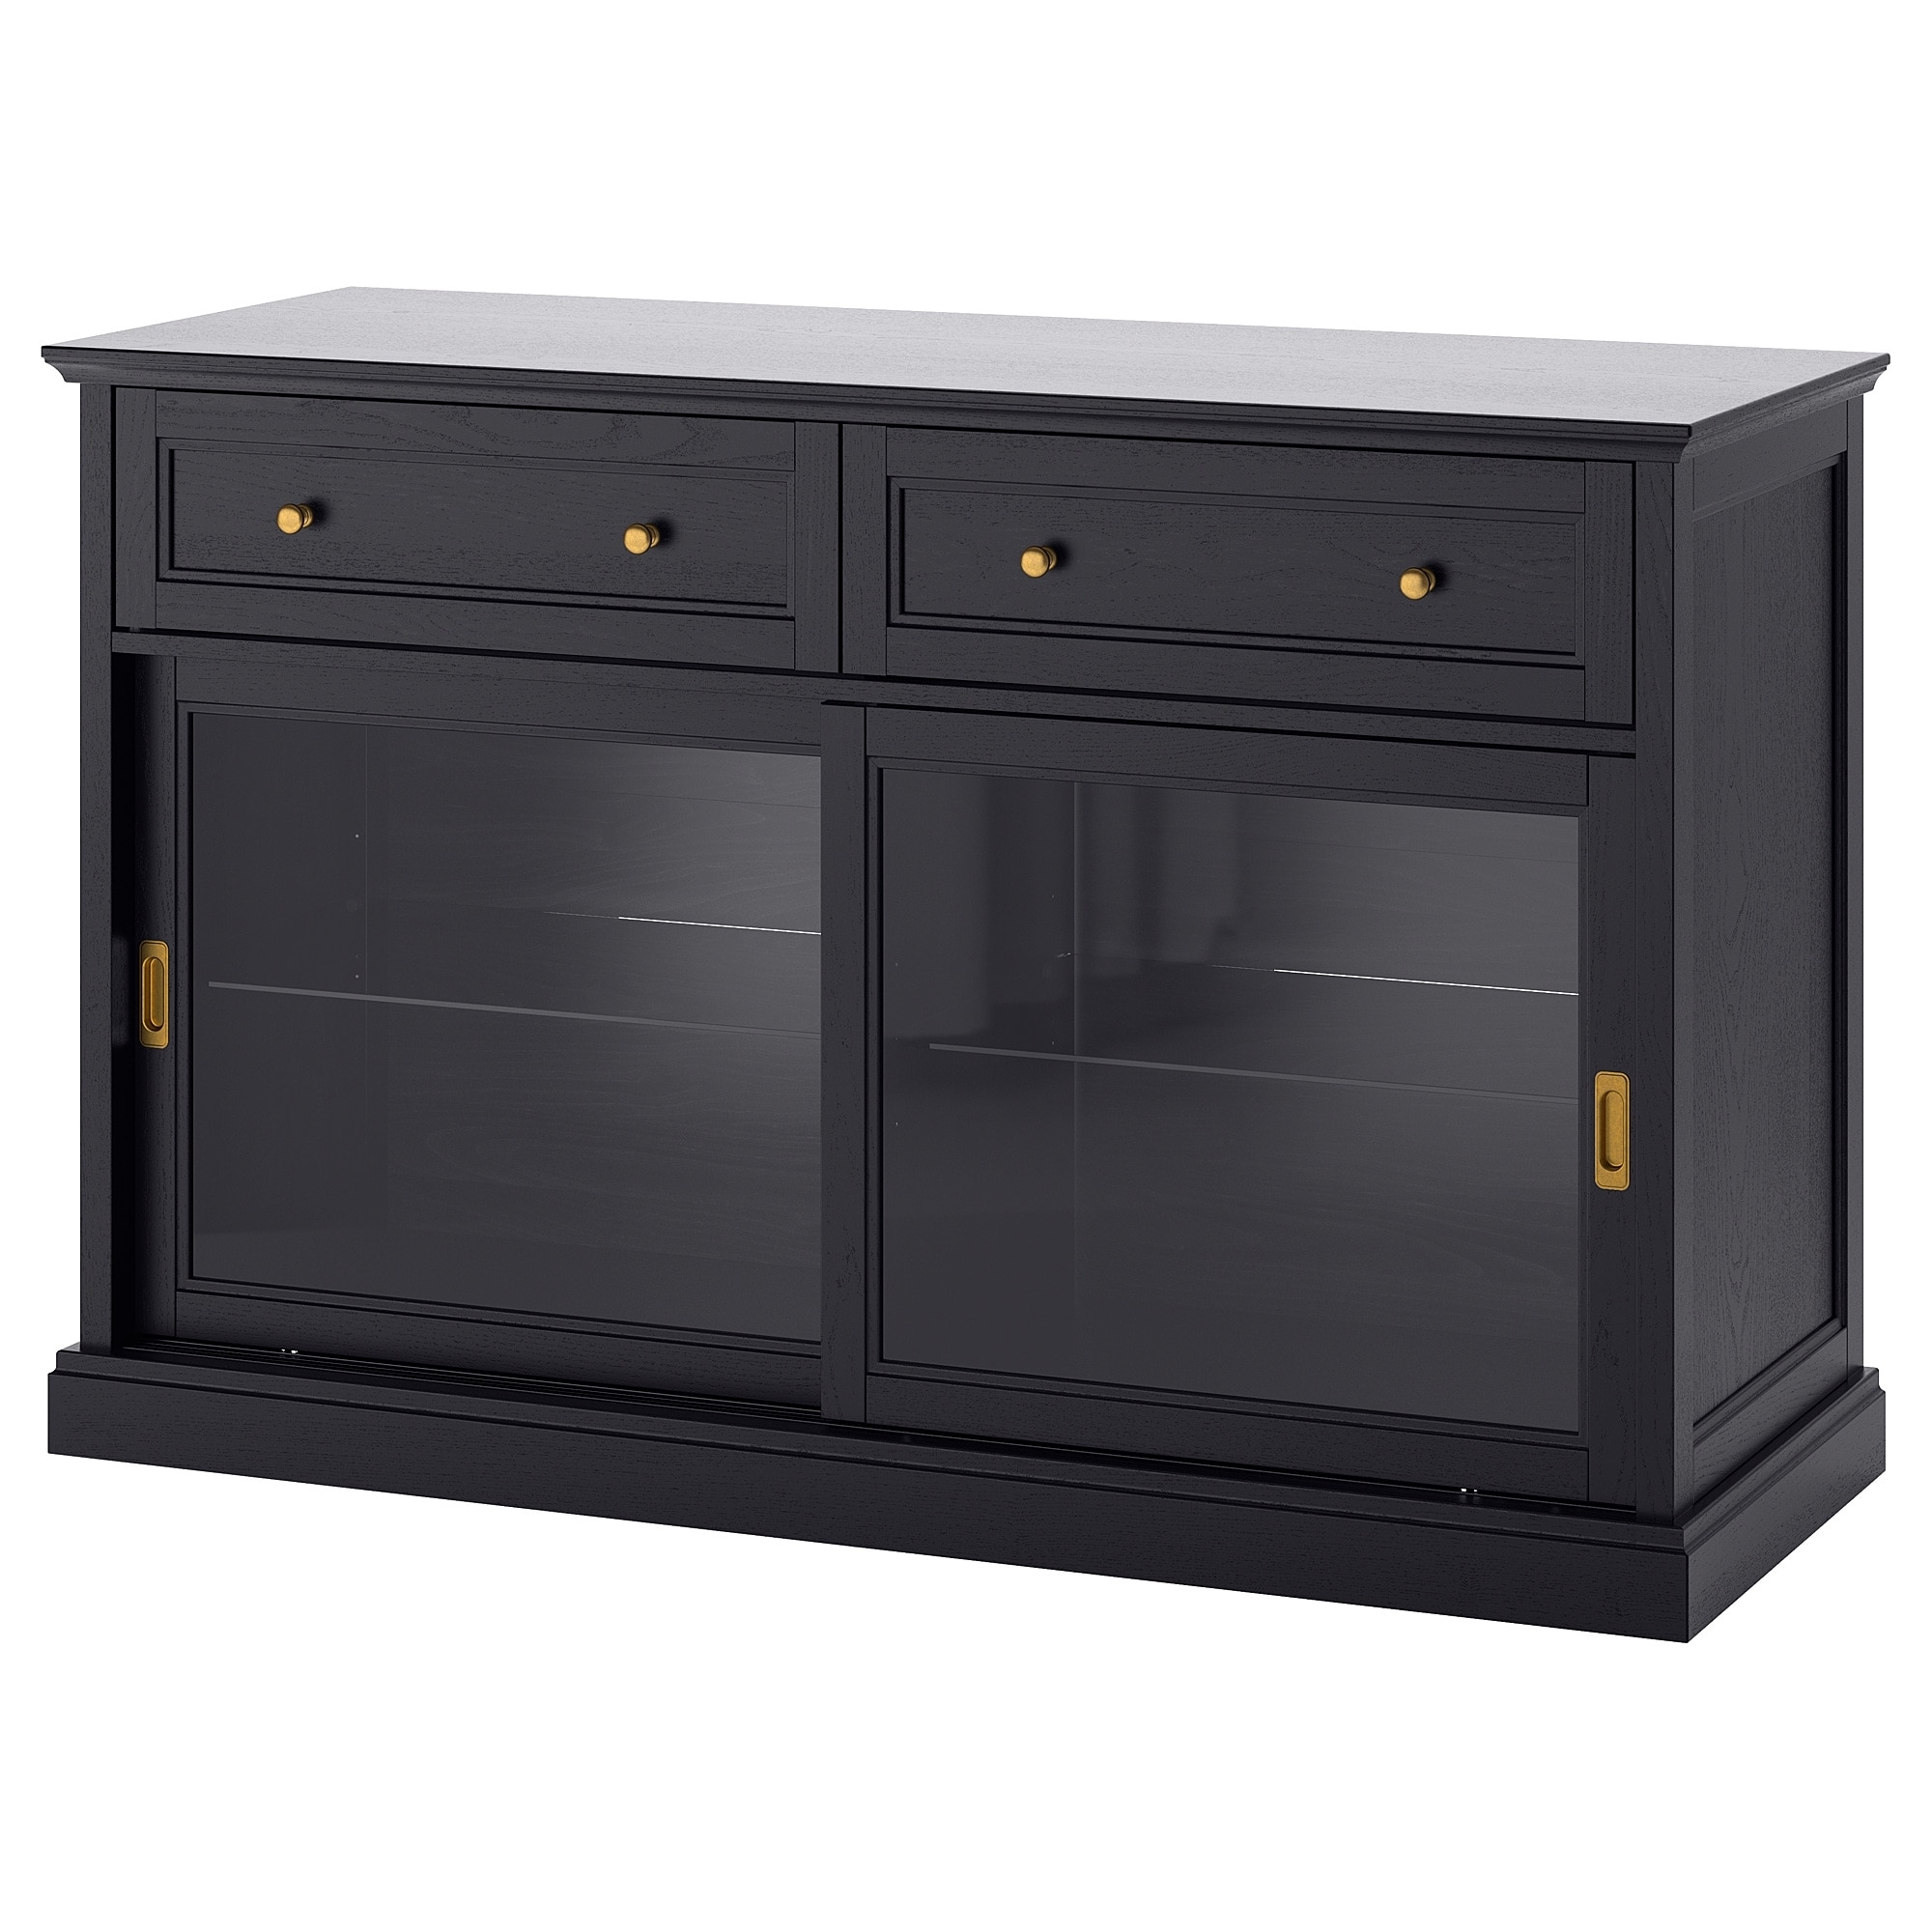 Sideboards & Buffet Cabinets | Ikea for Open Shelf Brass 4-Drawer Sideboards (Image 18 of 30)